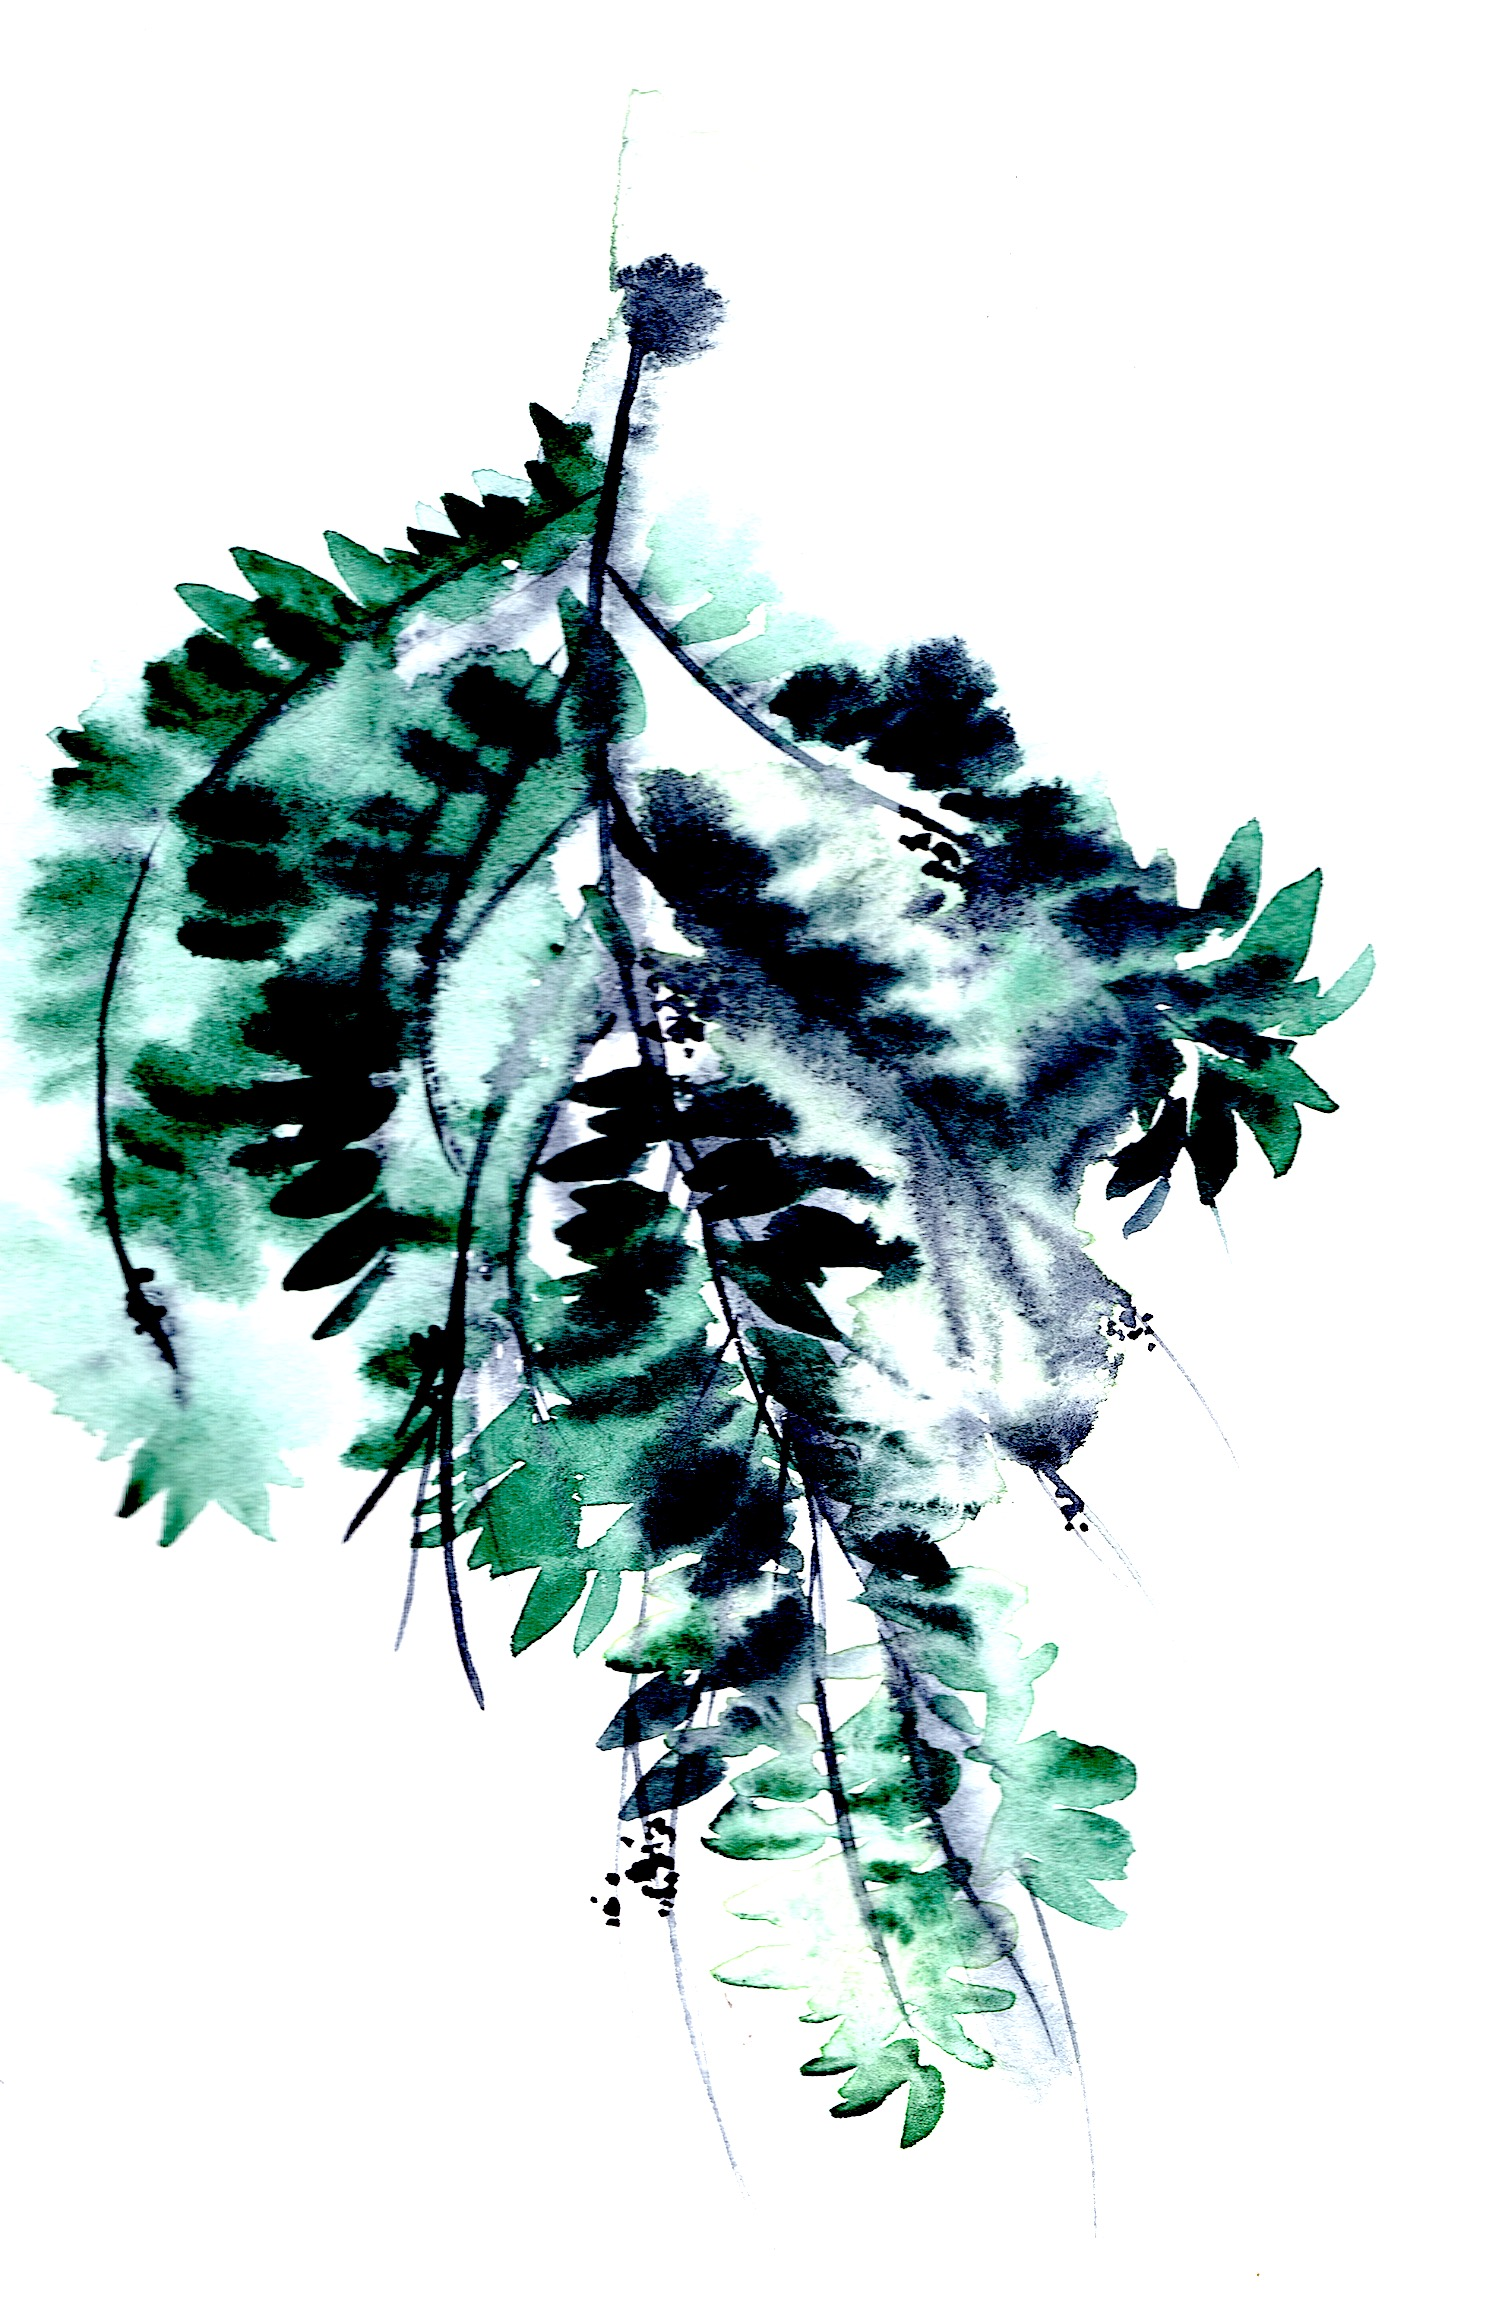 Green watercolour leaves